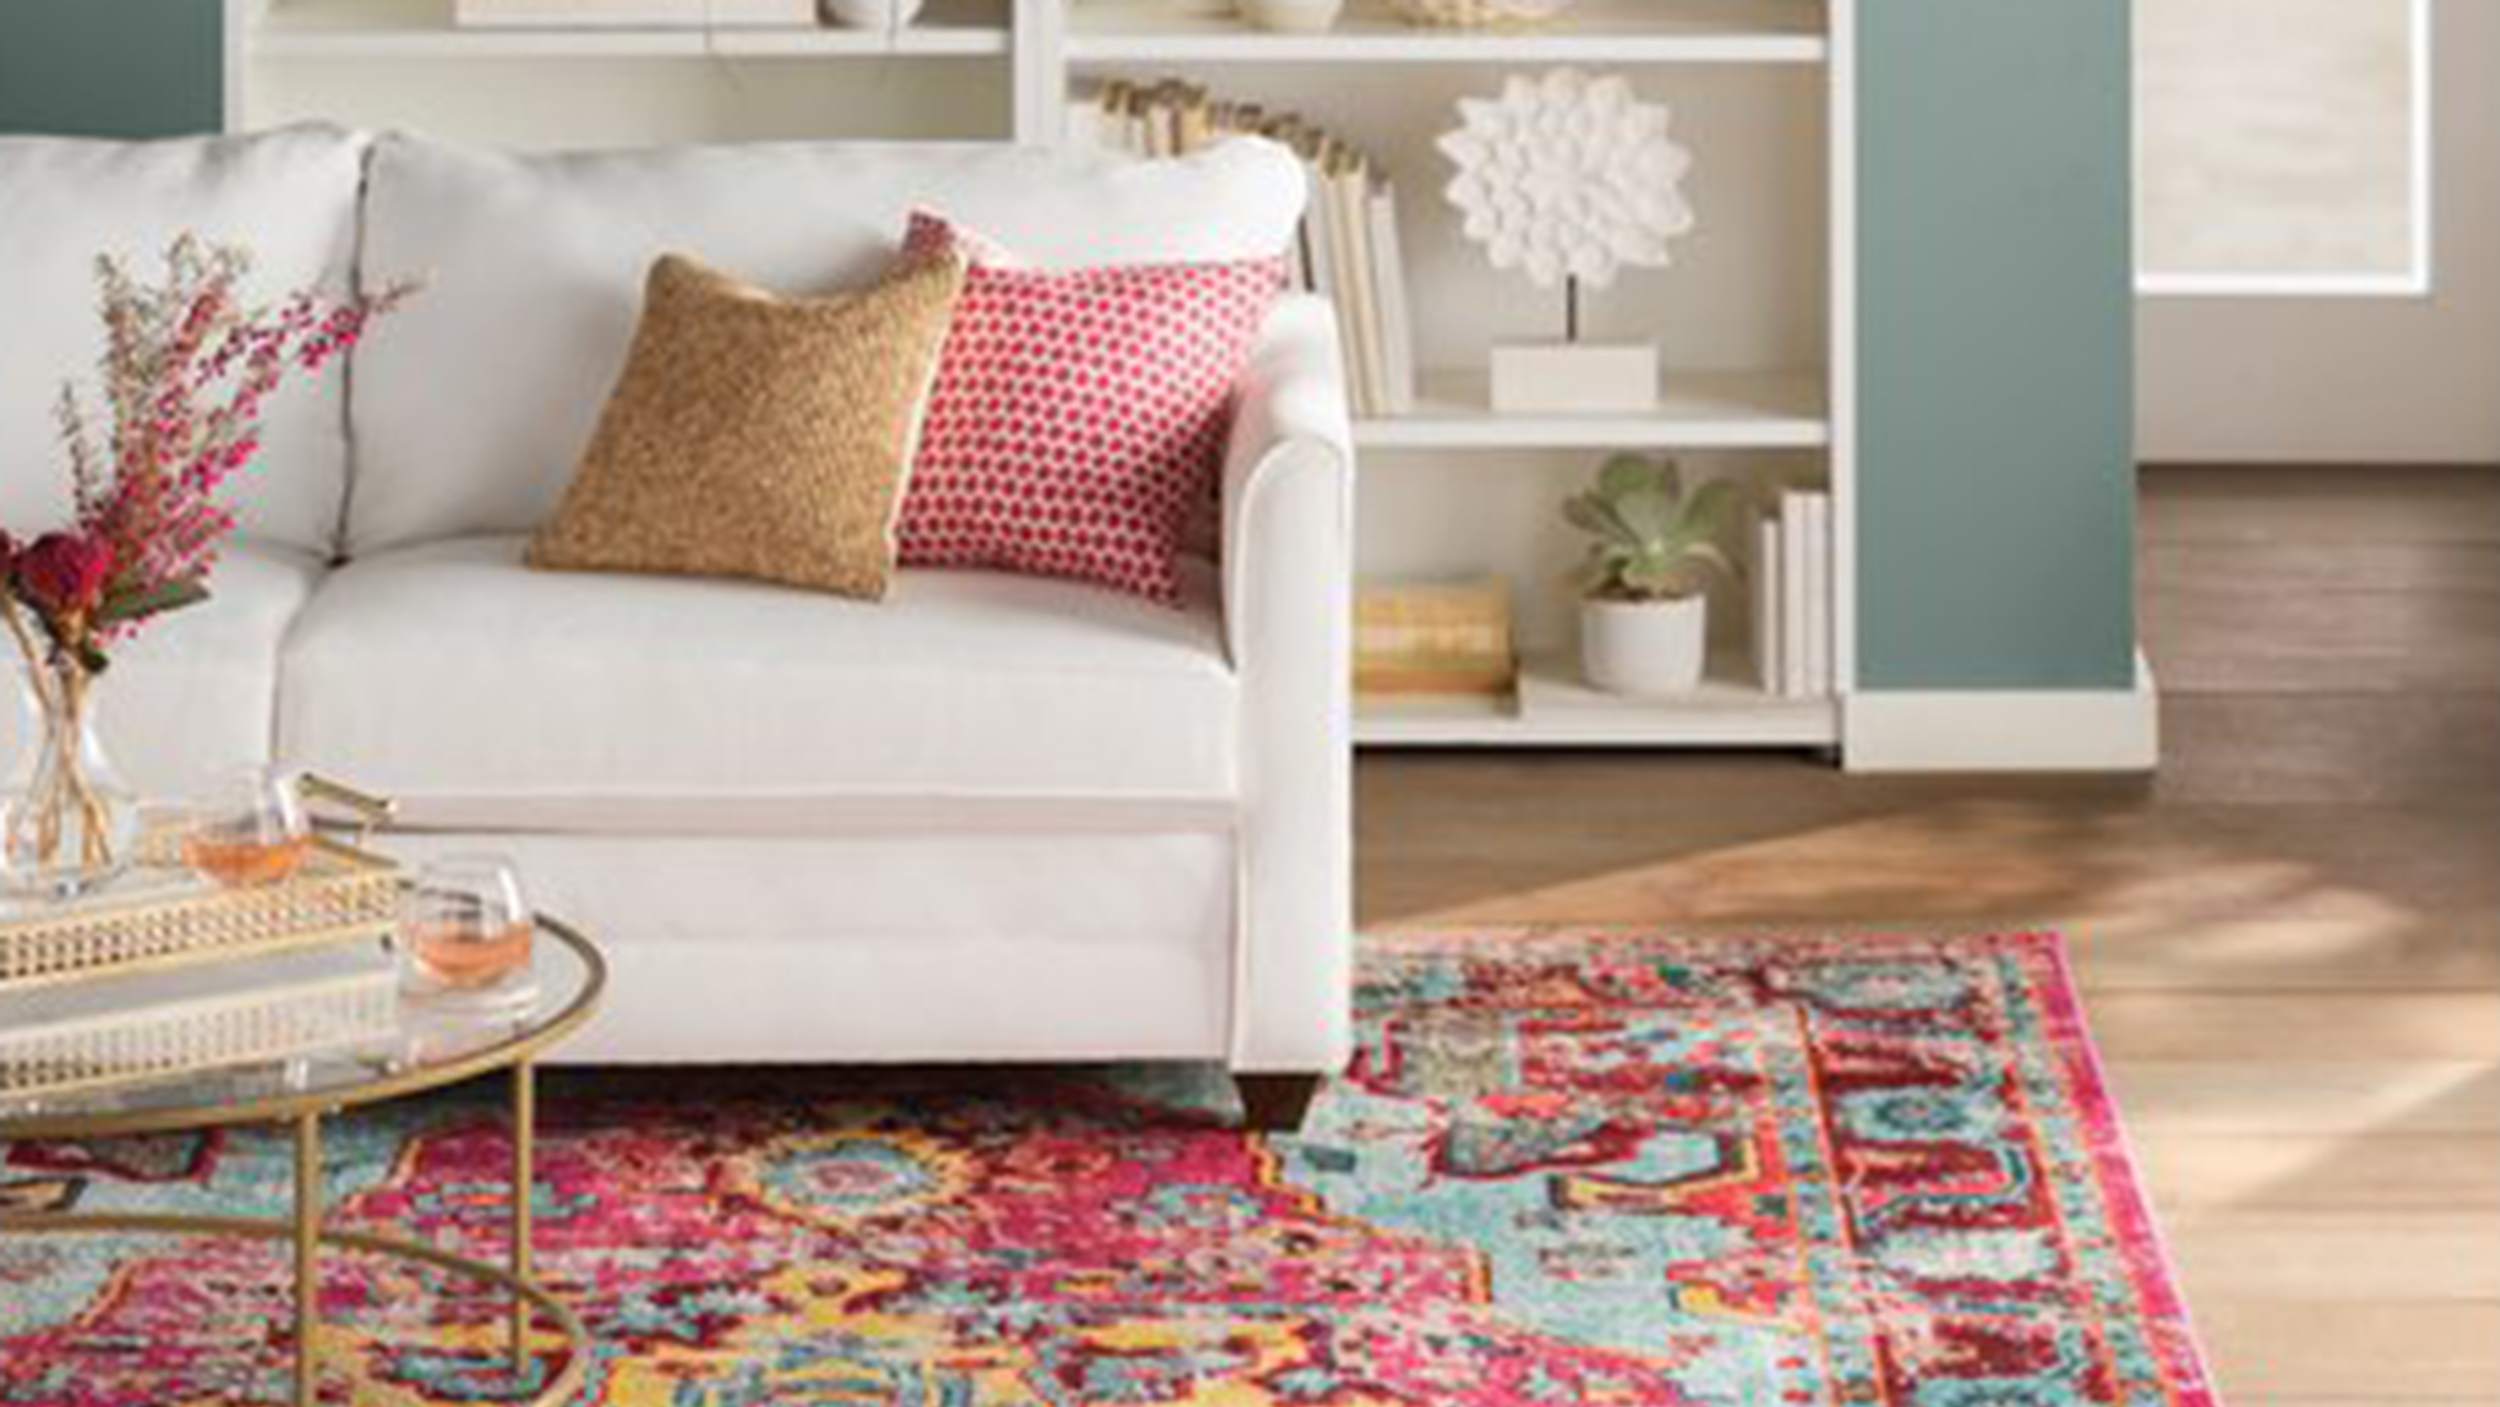 8 places to buy area rugs shag rugs safavieh rugs for Where can i buy area rugs